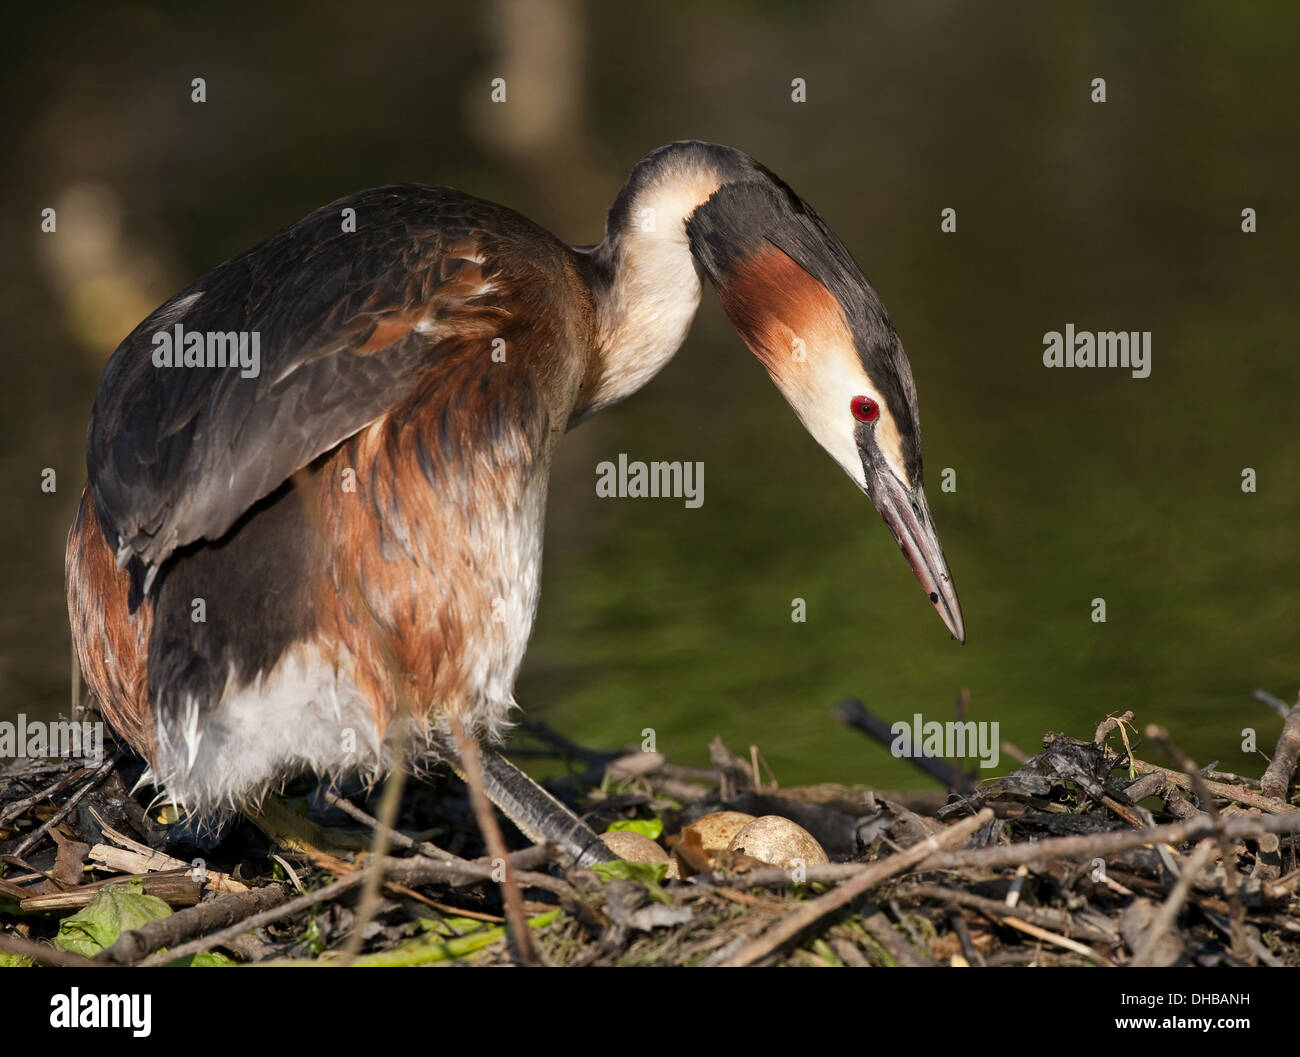 Great Crested Grebe at the nest, Podiceps cristatus, Germany, Europe - Stock Image